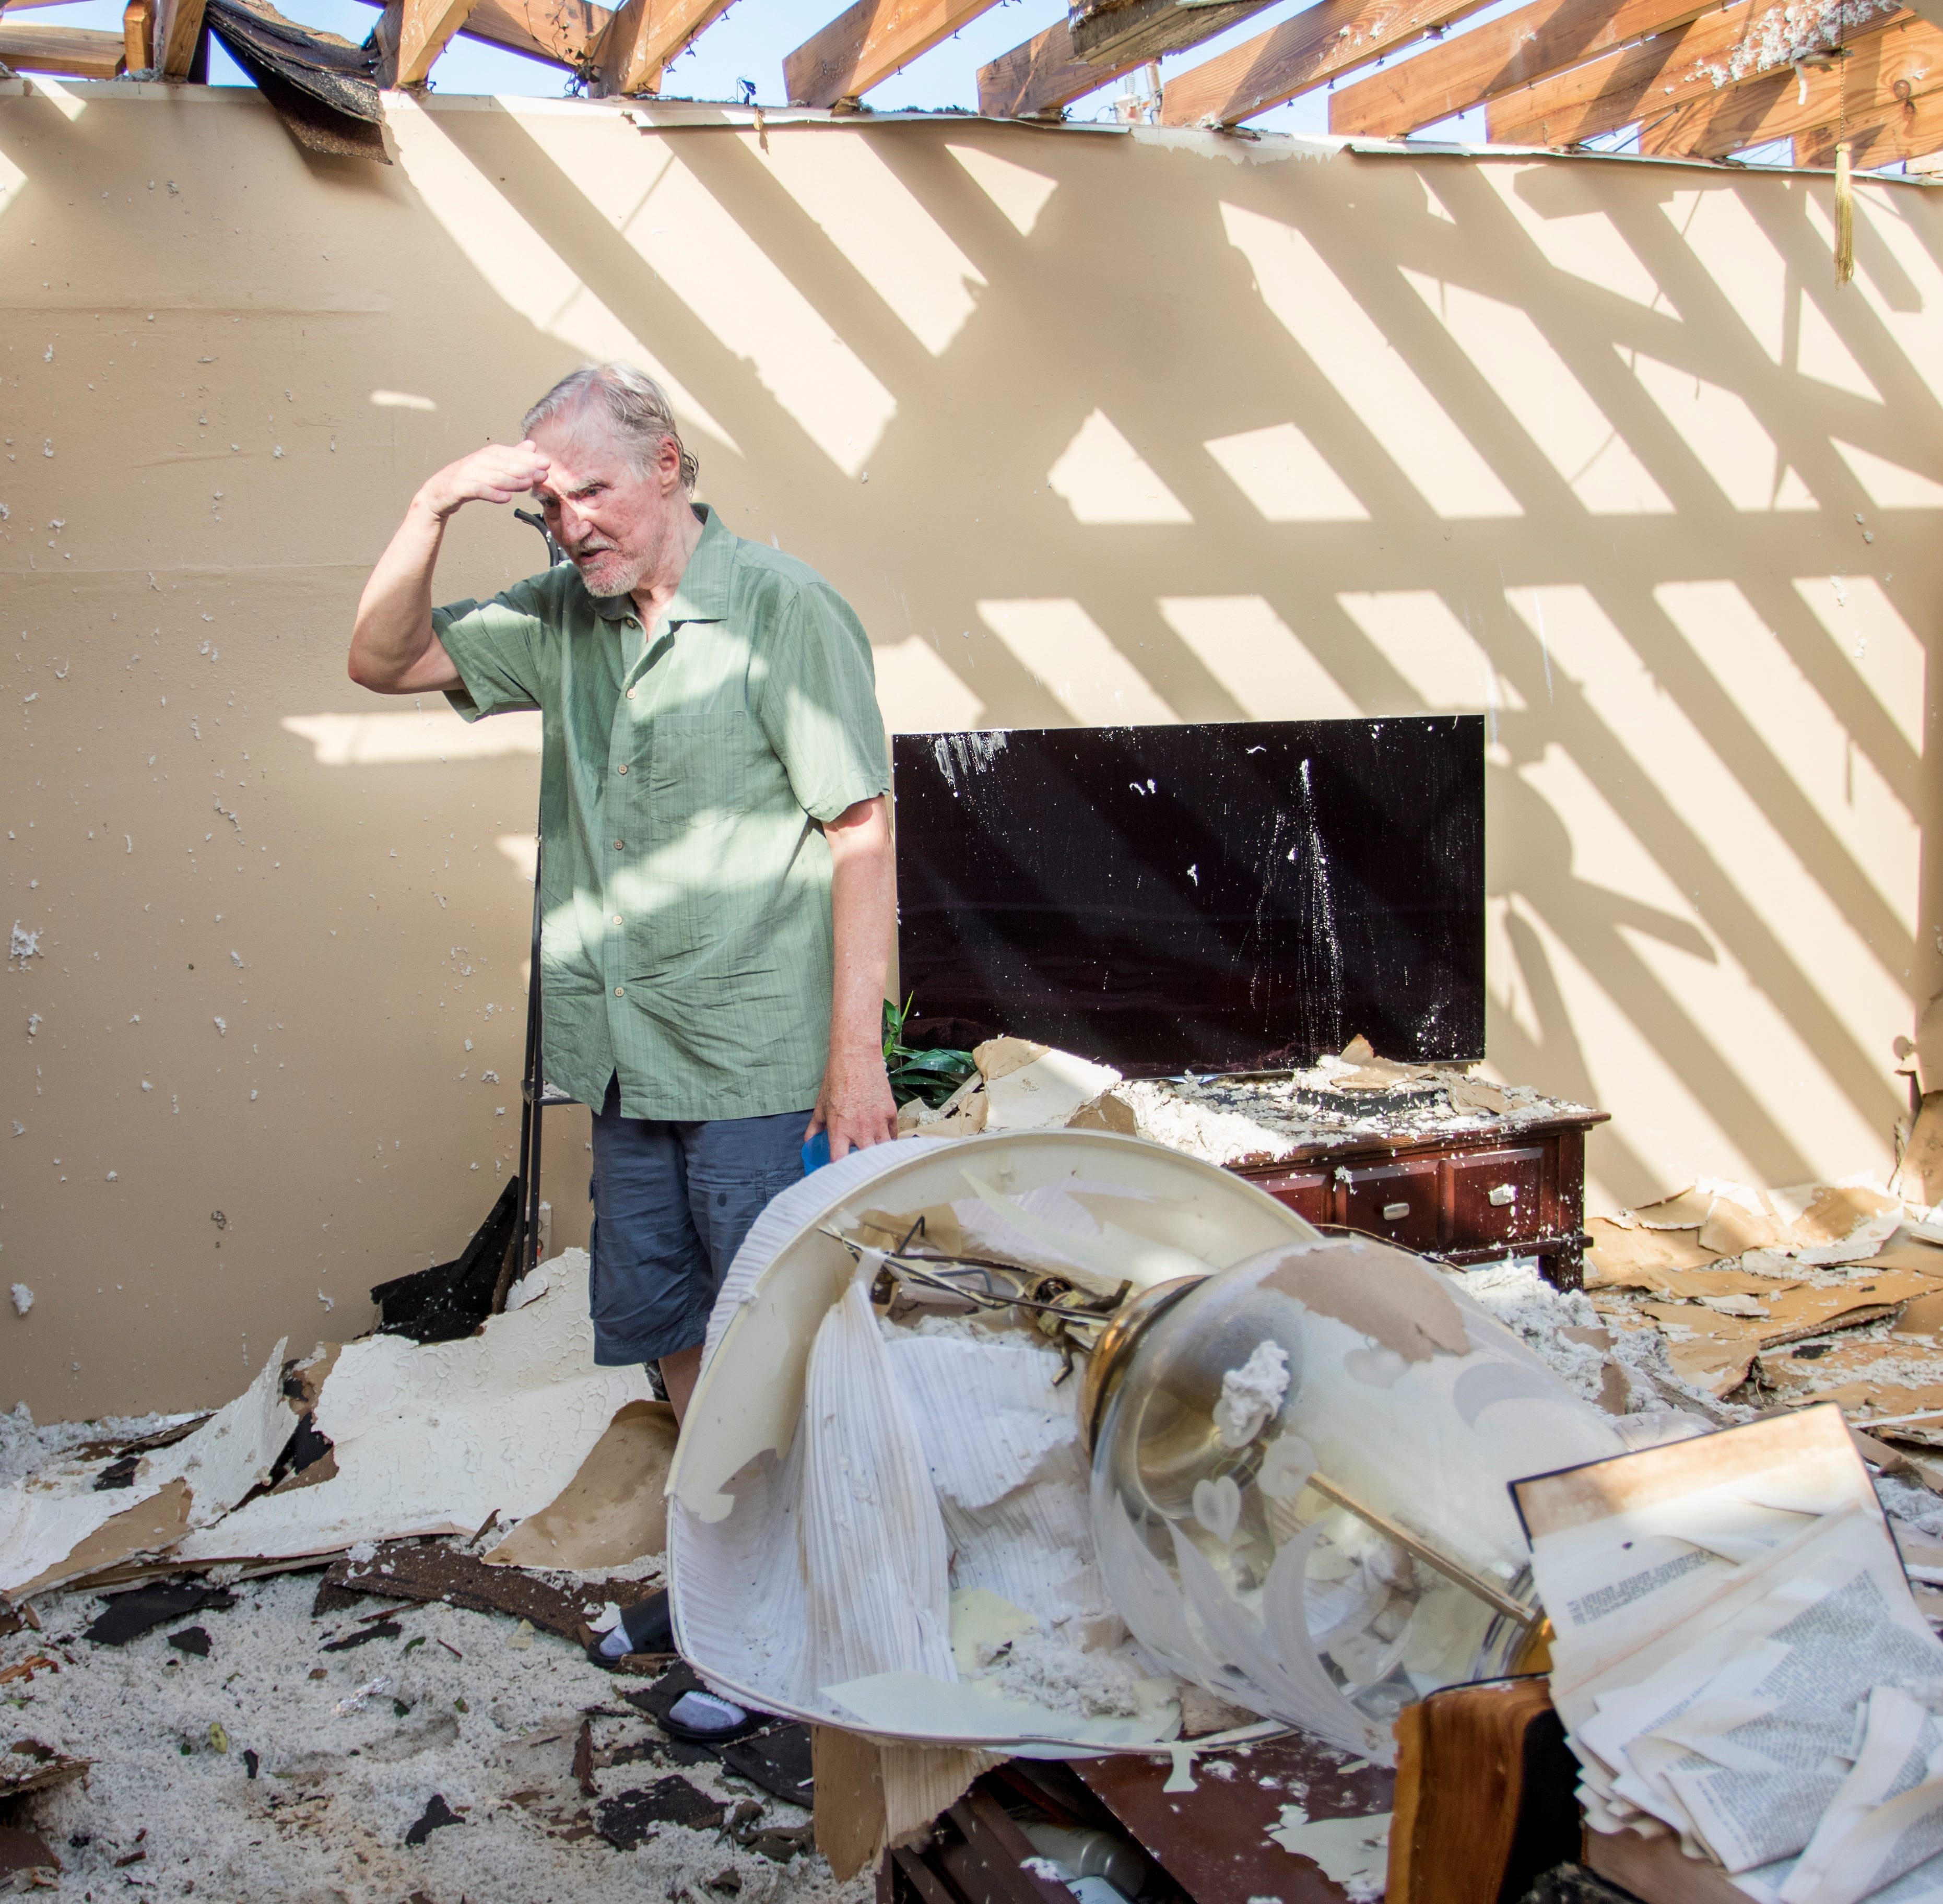 Panama City retirees leave shelter Monday only to find house destroyed